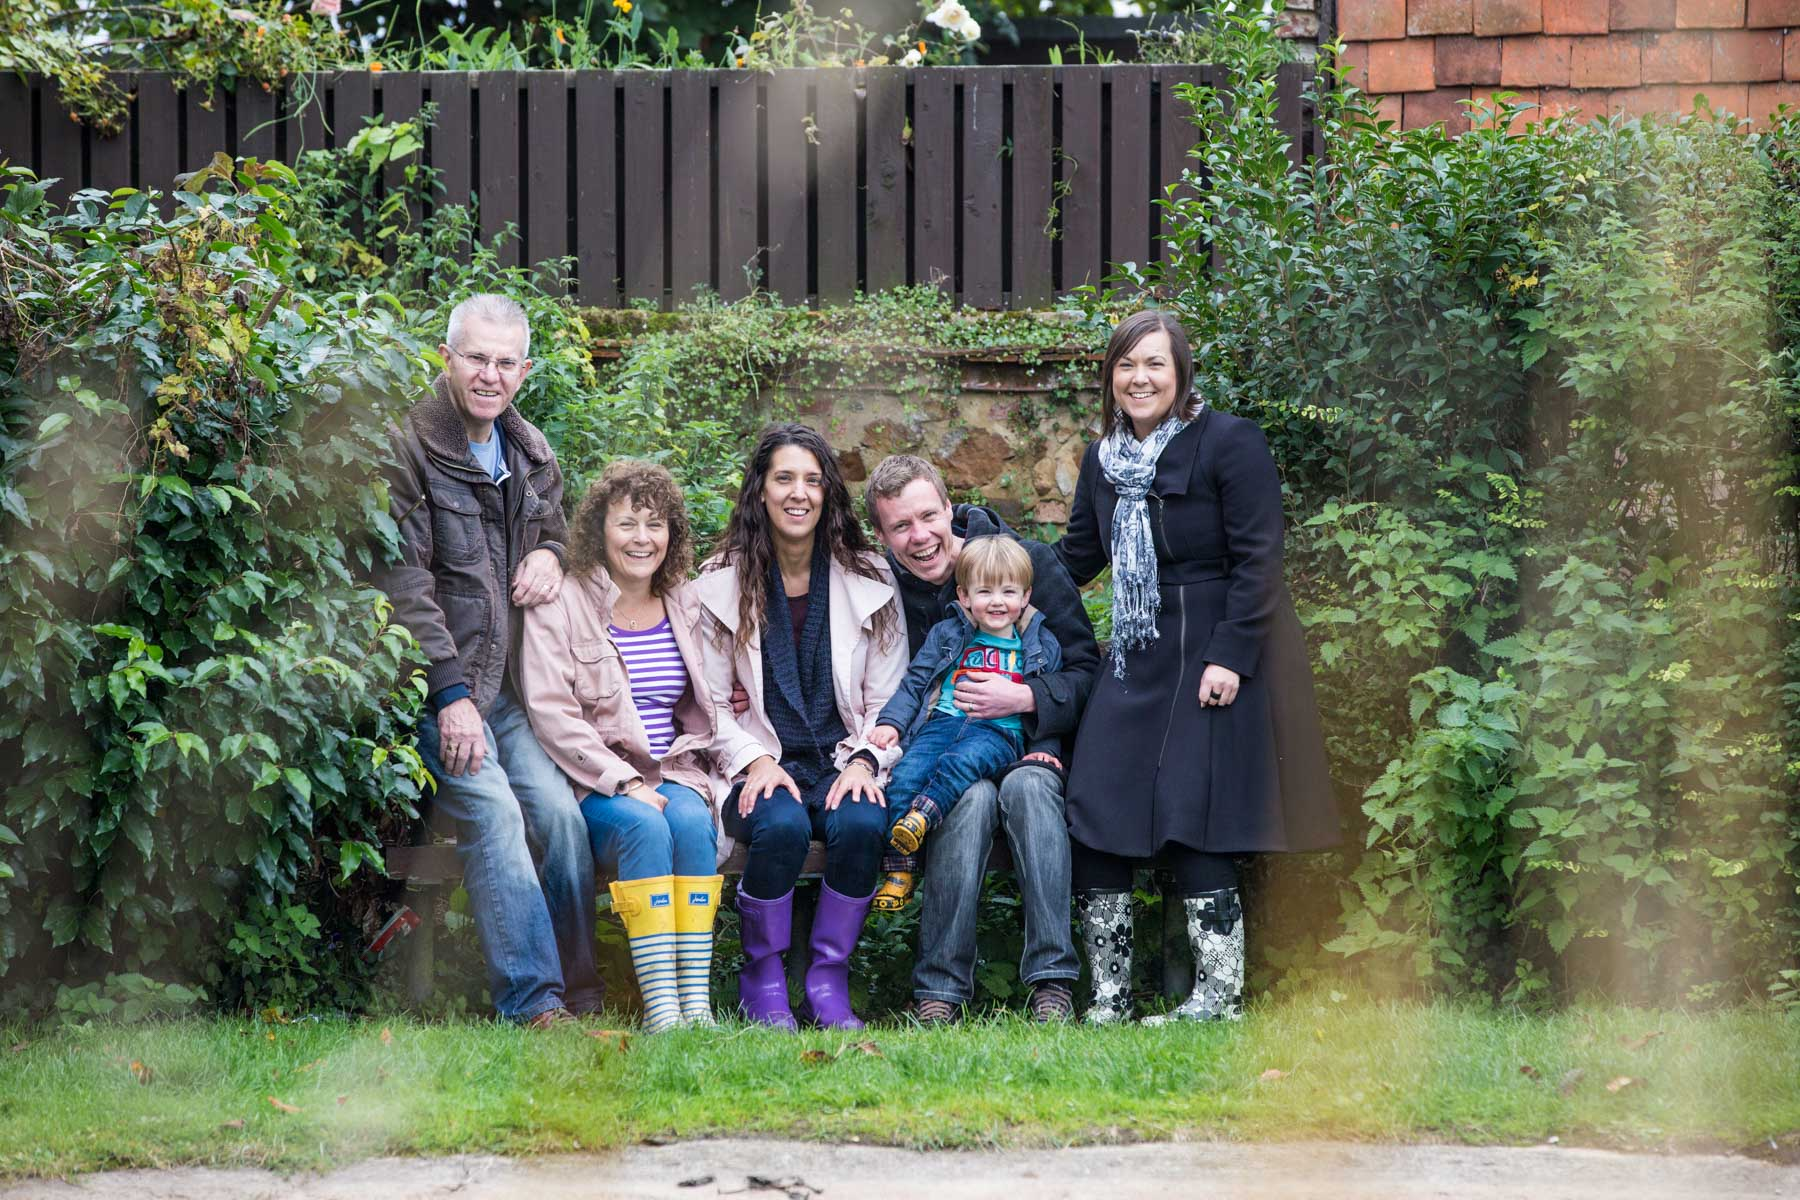 Beautiful family photography in Wiltshire by Richard Murgatroyd